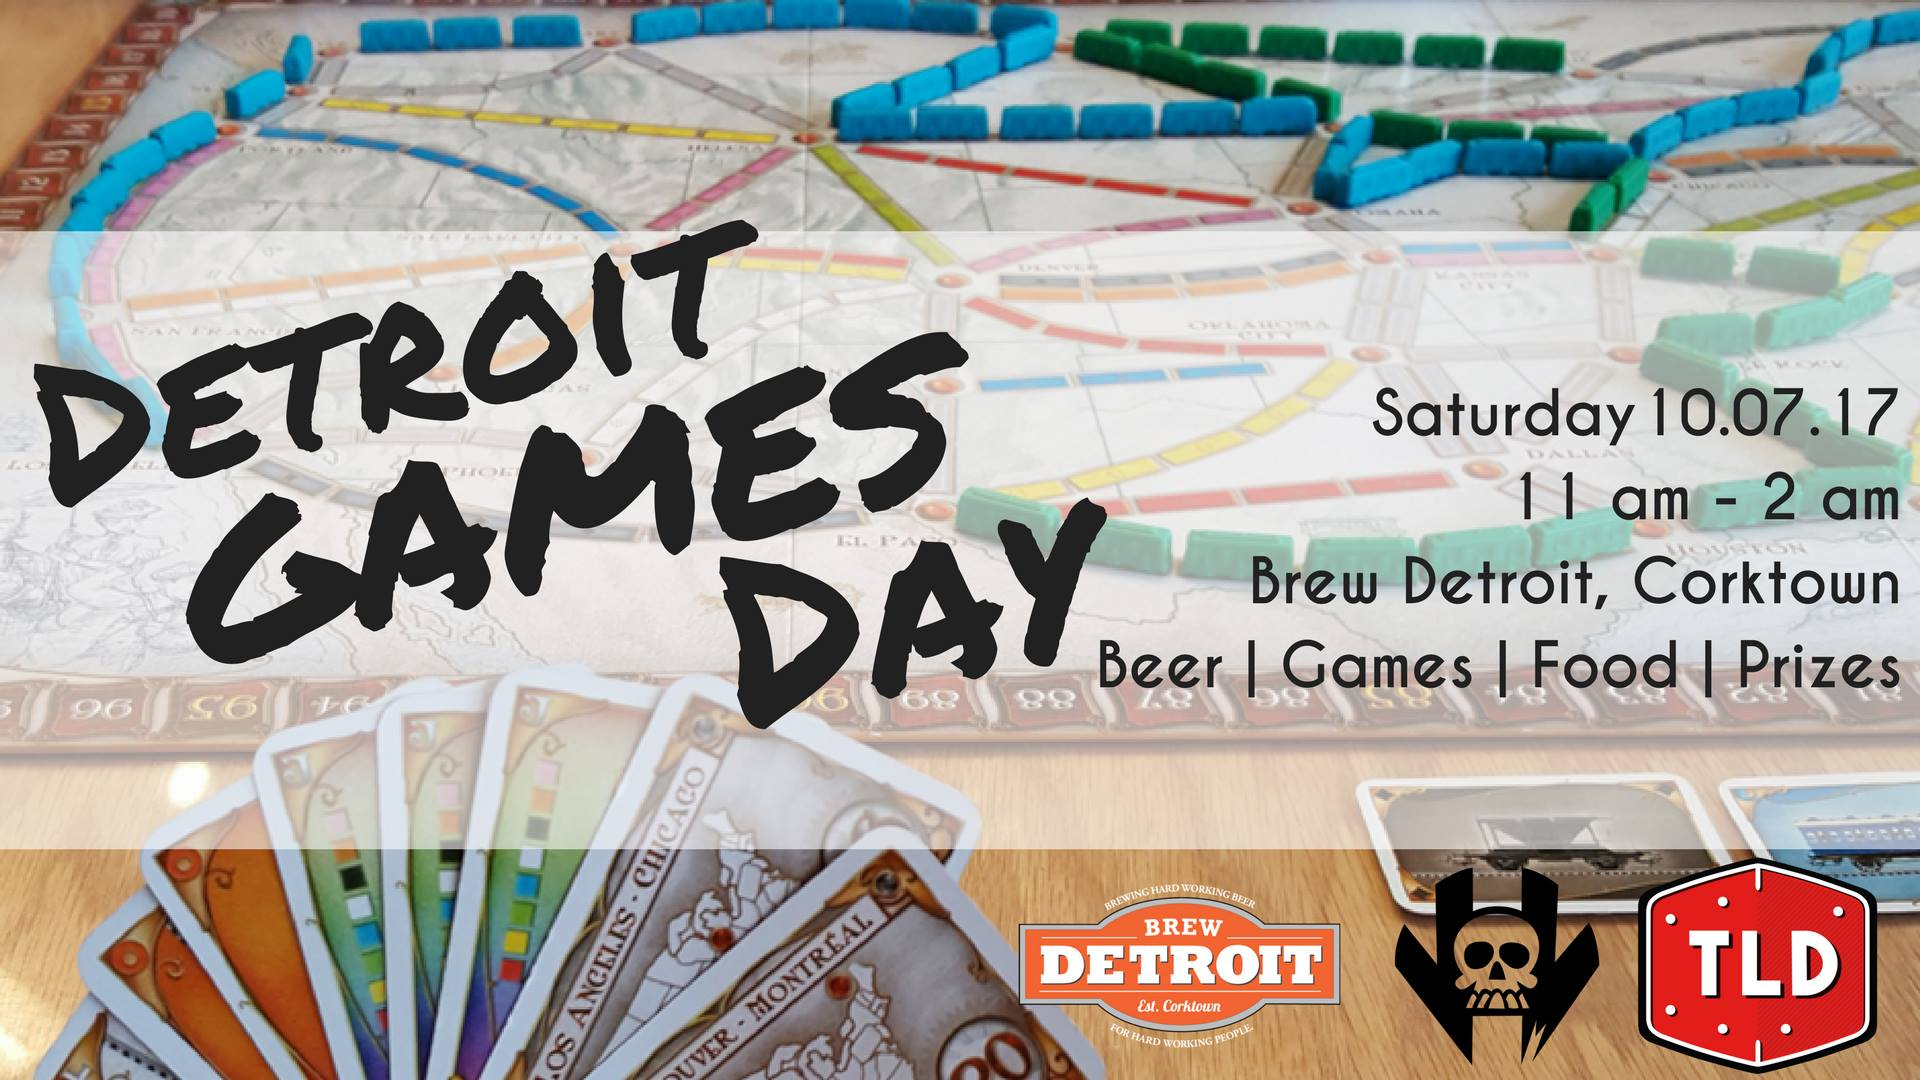 Join  The Loaded Die , Vault of Midnight Detroit , Hero Or Villain Van and  Brew Detroit as they team up for a 15 hour day of board games on Saturday, October 7th!  From 11am - 2am there will be open, and organized, board gaming inside Brew Detroit's two story taproom! Board Game Gurus will be in-house to help you learn how to play different games that will be on location (to be announced soon).  Hero or Villian Food Truck will be parked out front serving up delicious food all night.  TIcket Includes: -Entry into Detroit Games Day -Swag Bag of goodies -Tickets for the raffle with over $1,000 in prizes -Hero or Villian meal -Brew Detroit Craft Pint (must be 21+)  Ticket Prices: -Early Bird ($26) -After 8/13 ($28)  Tickets can be purchased below or in person at The Loaded Die or Vault of Midnight Detroit.